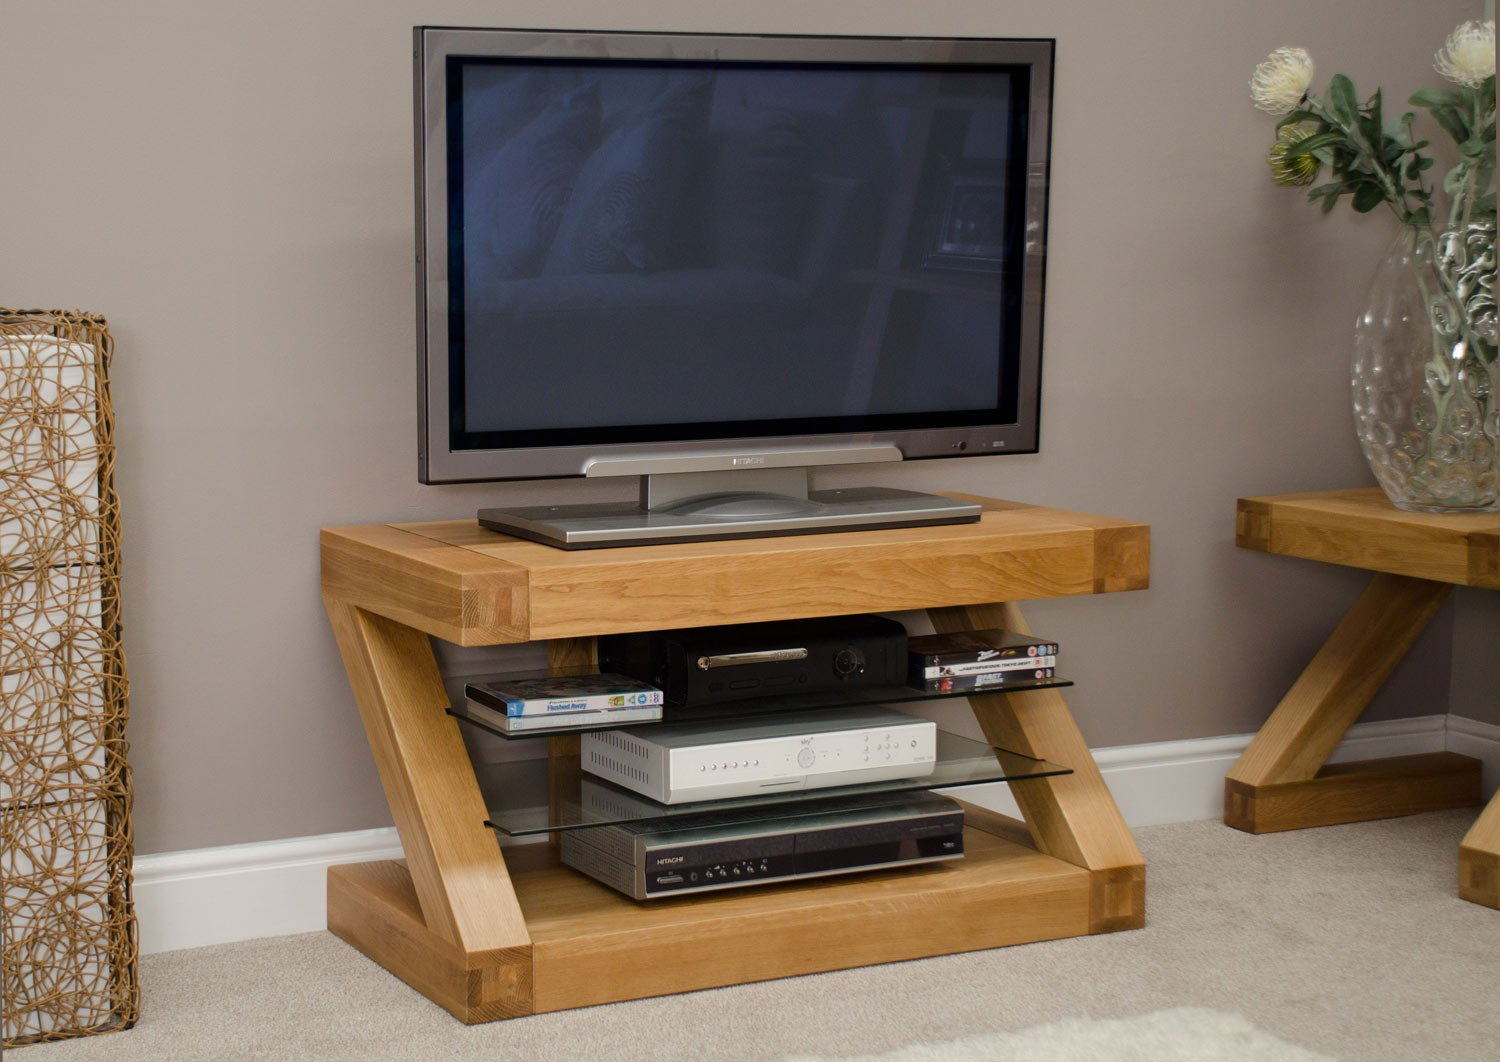 z oak designer tv unit amazoncouk kitchen  home -